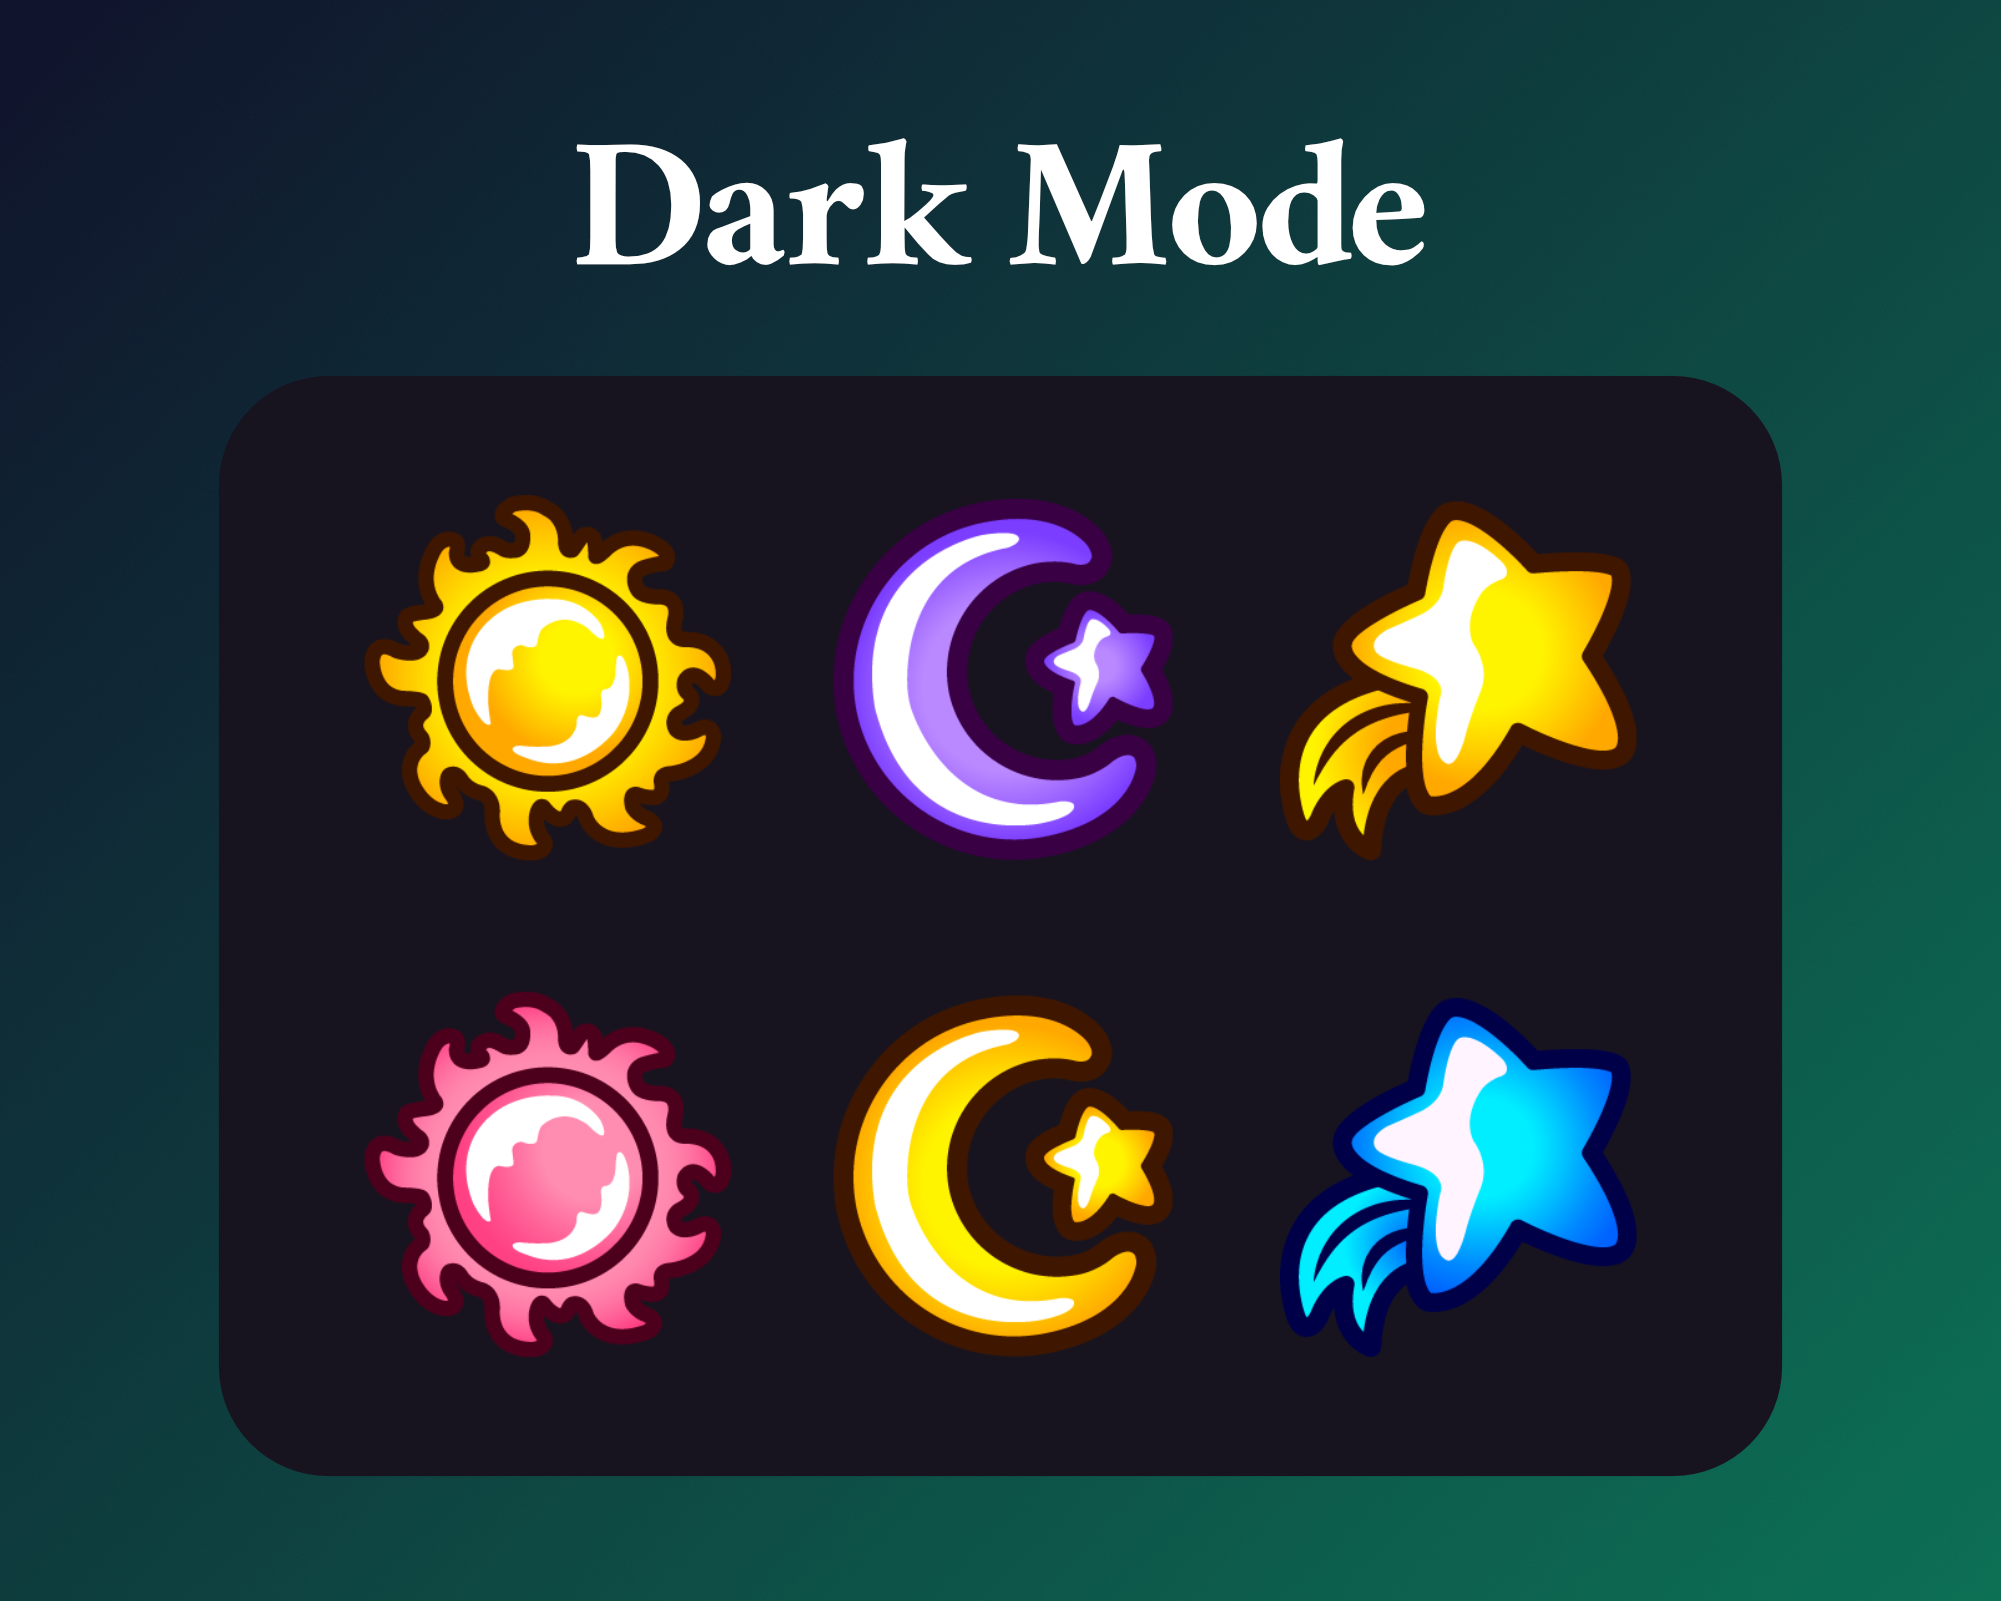 Sub badges for sun moons and stars